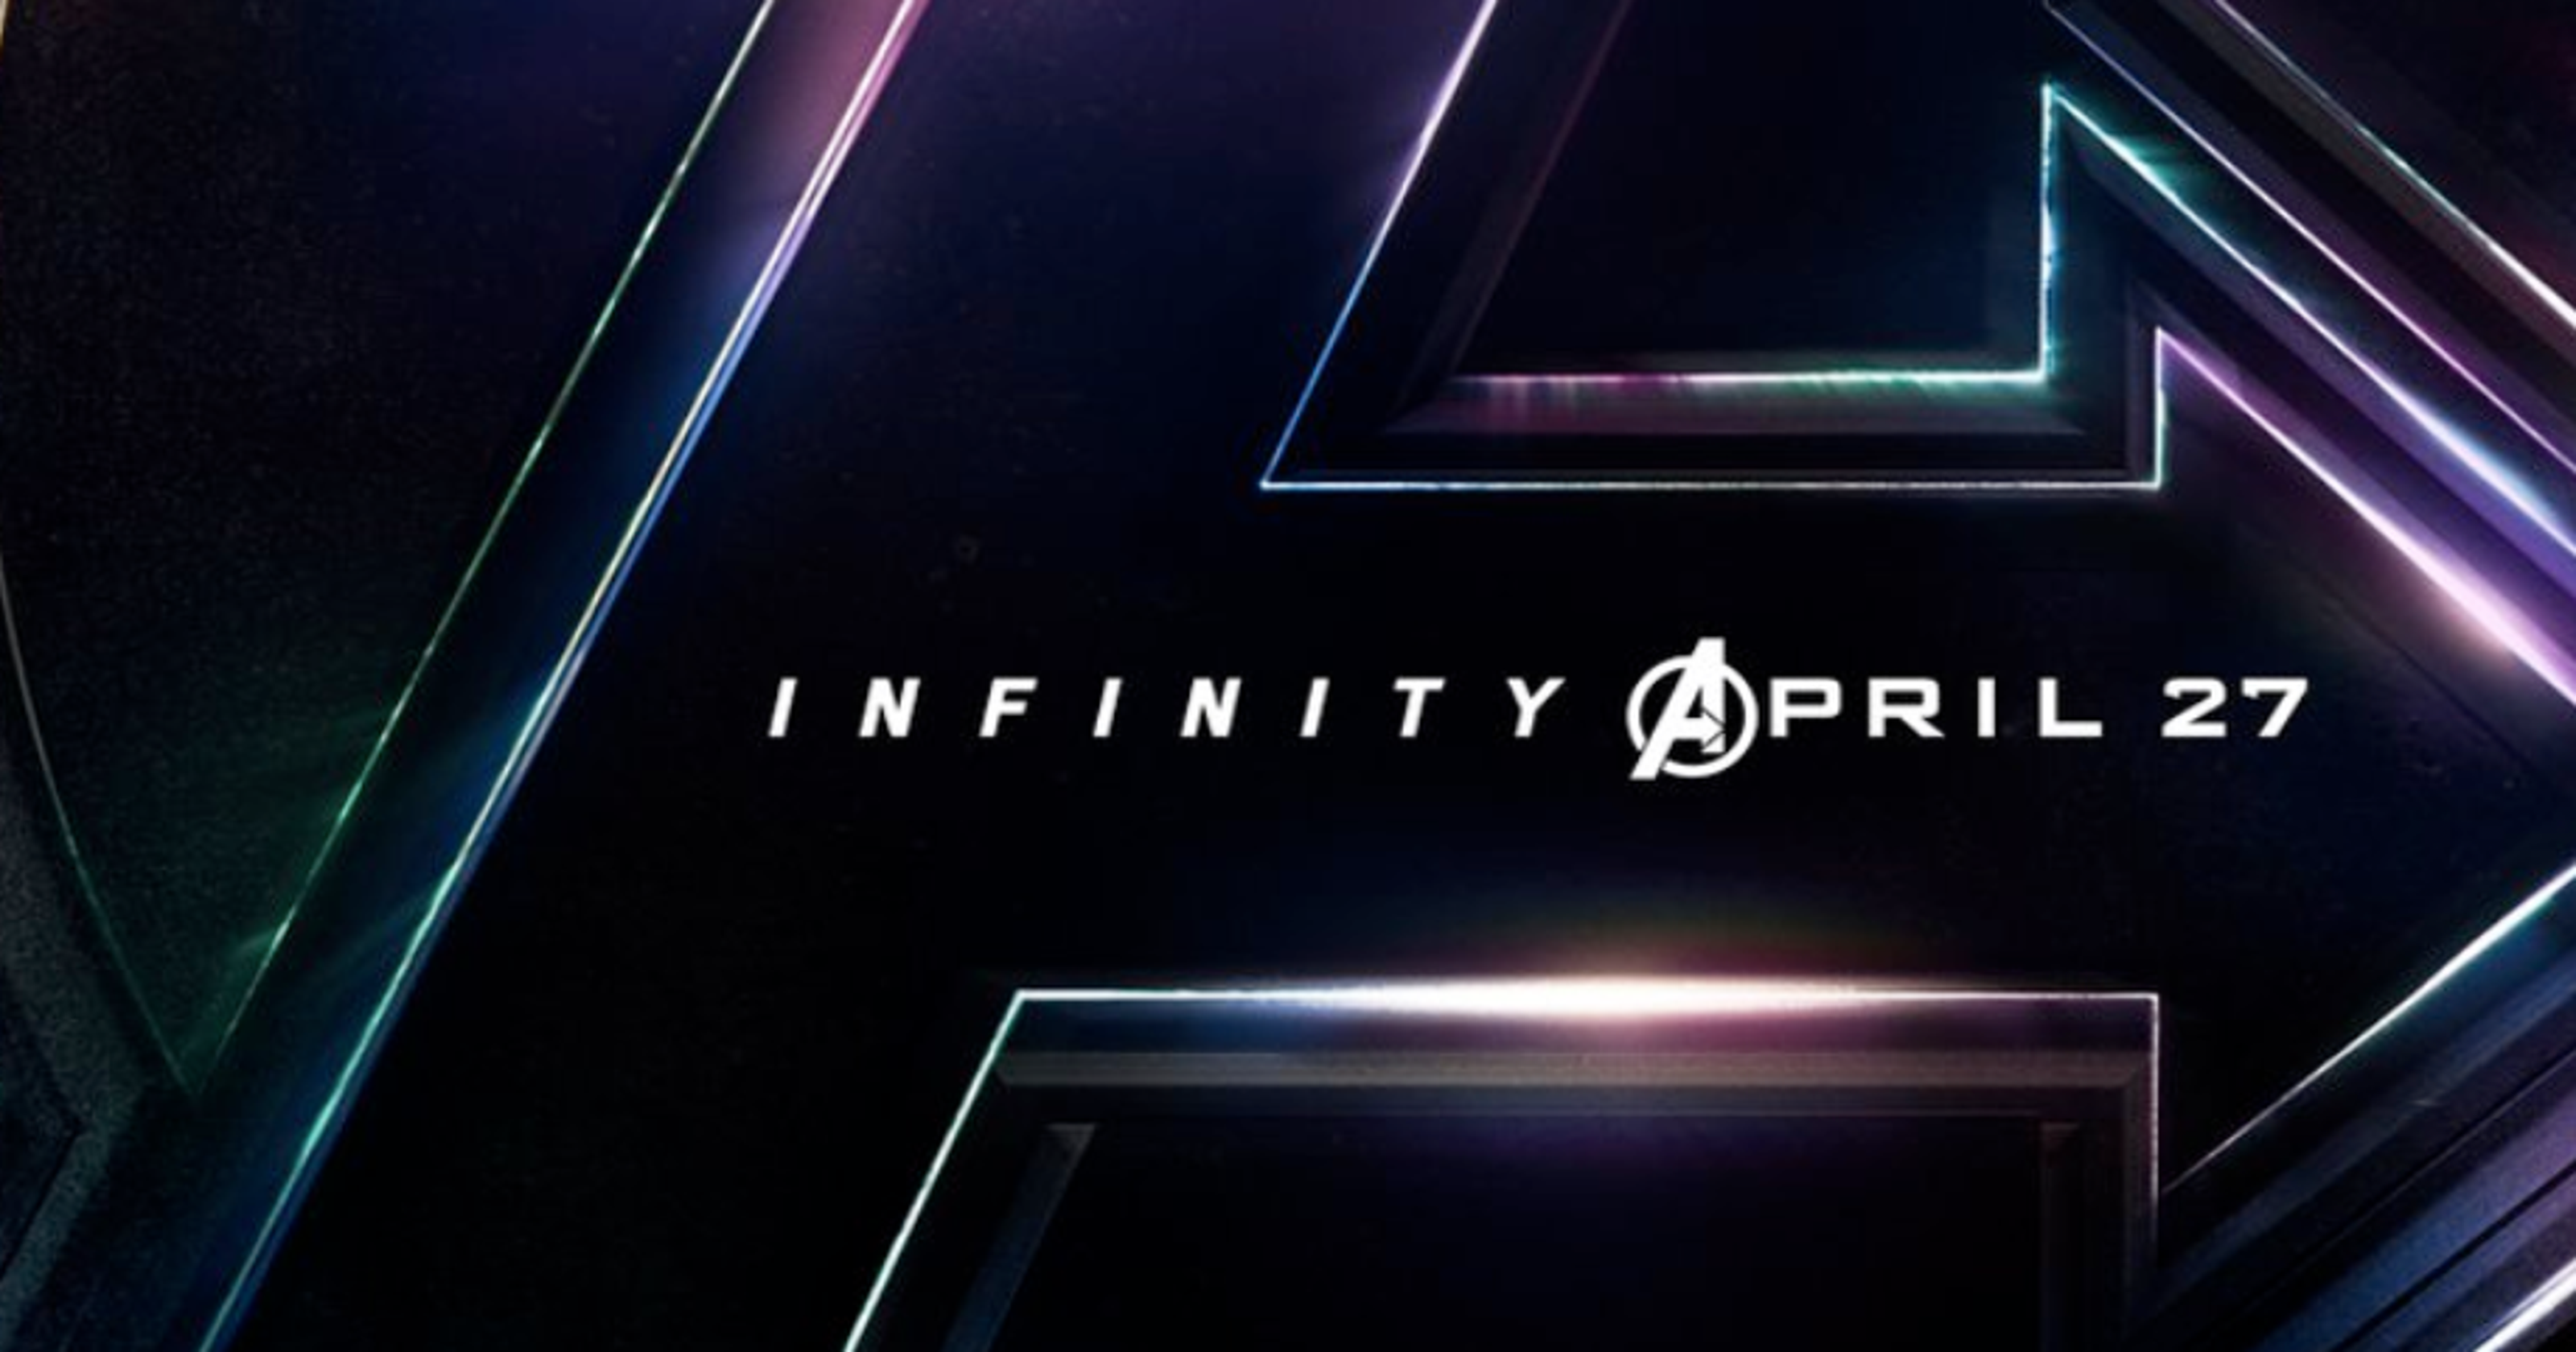 Avengers: Infinity War' release date moves into April